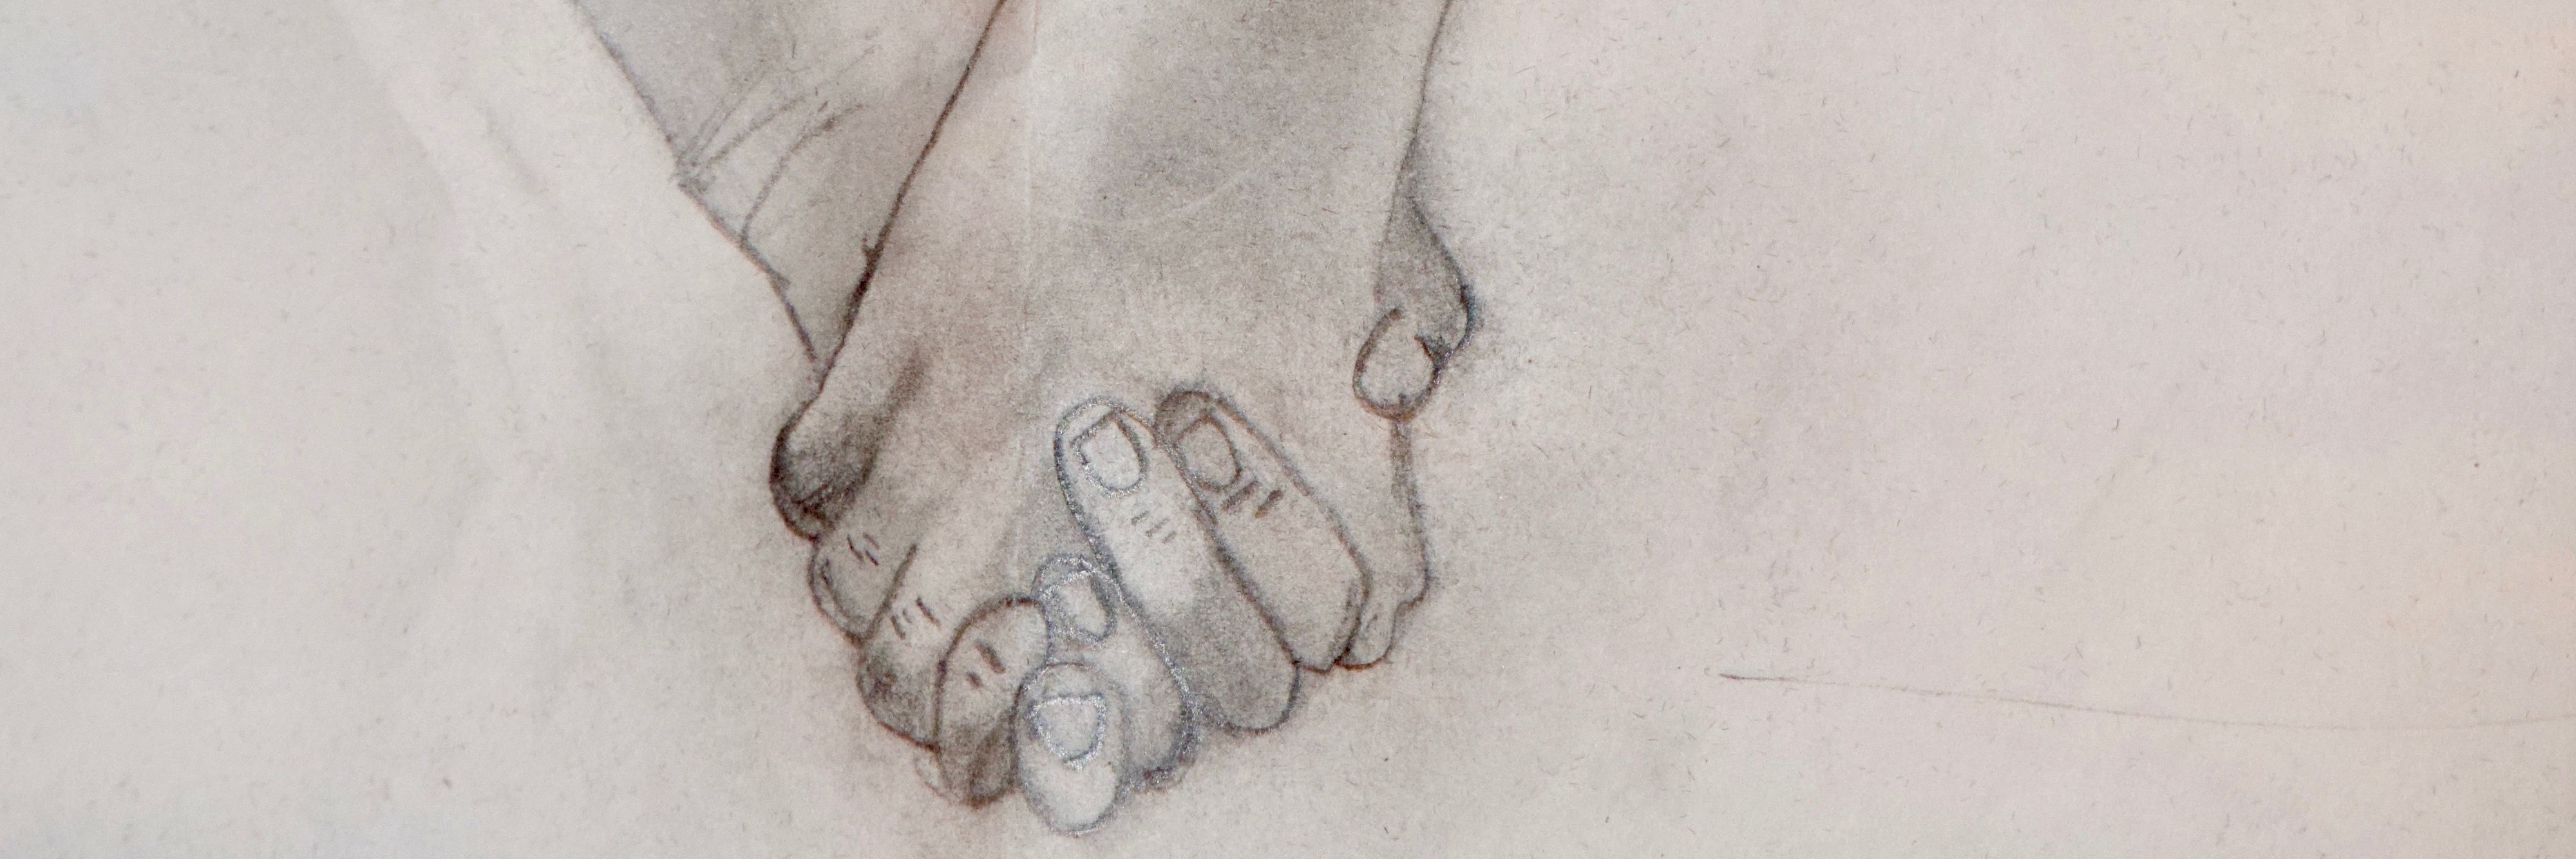 pencil drawing of two people holding hands